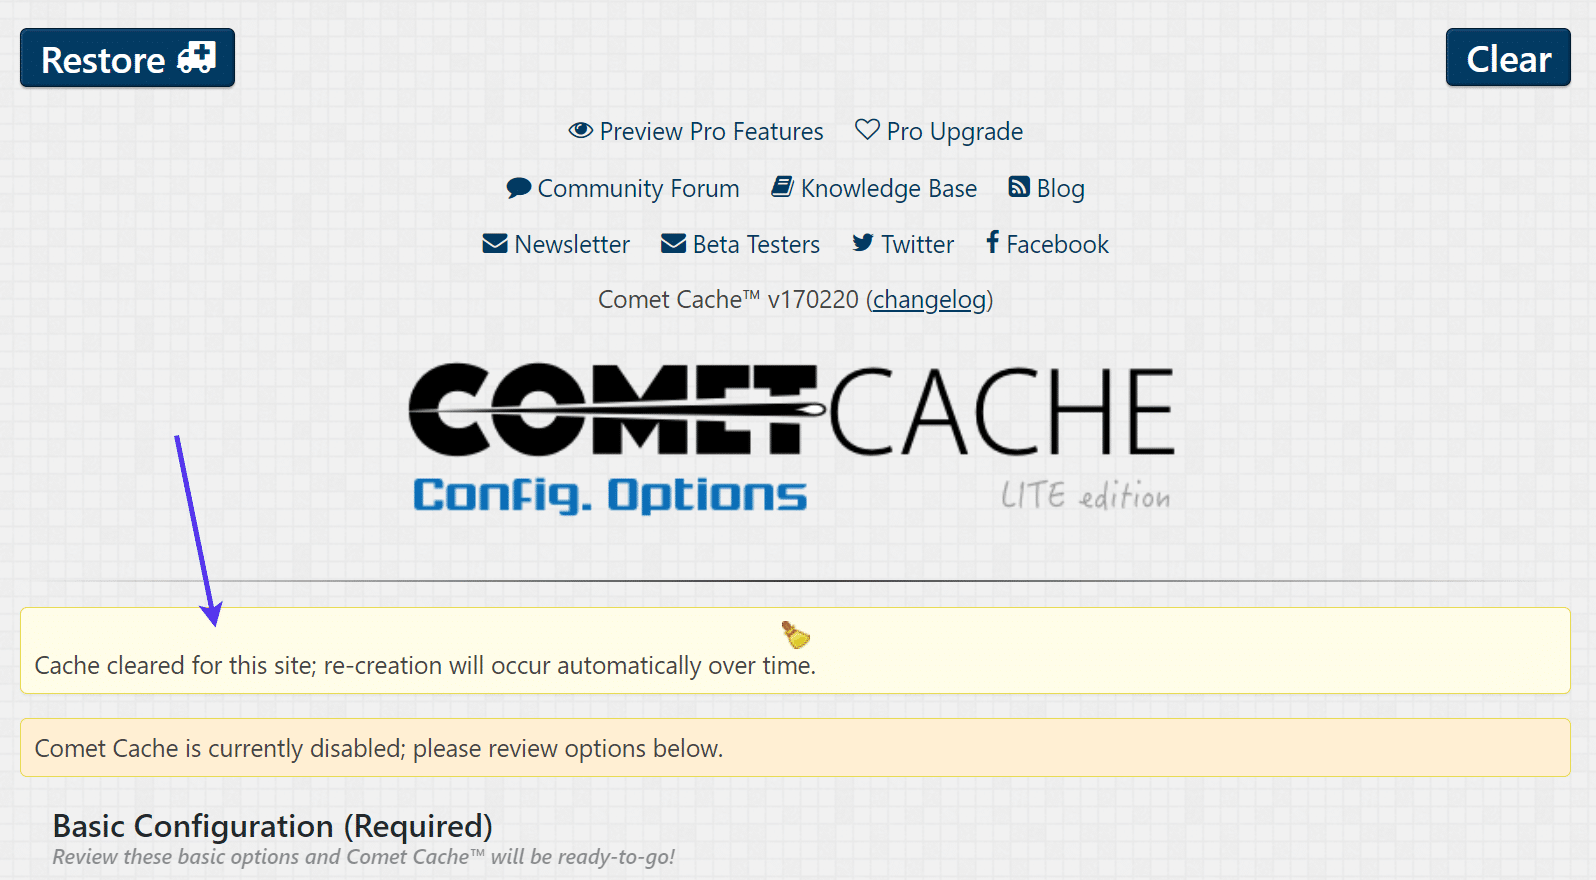 Cache cleared message with Comet Cache